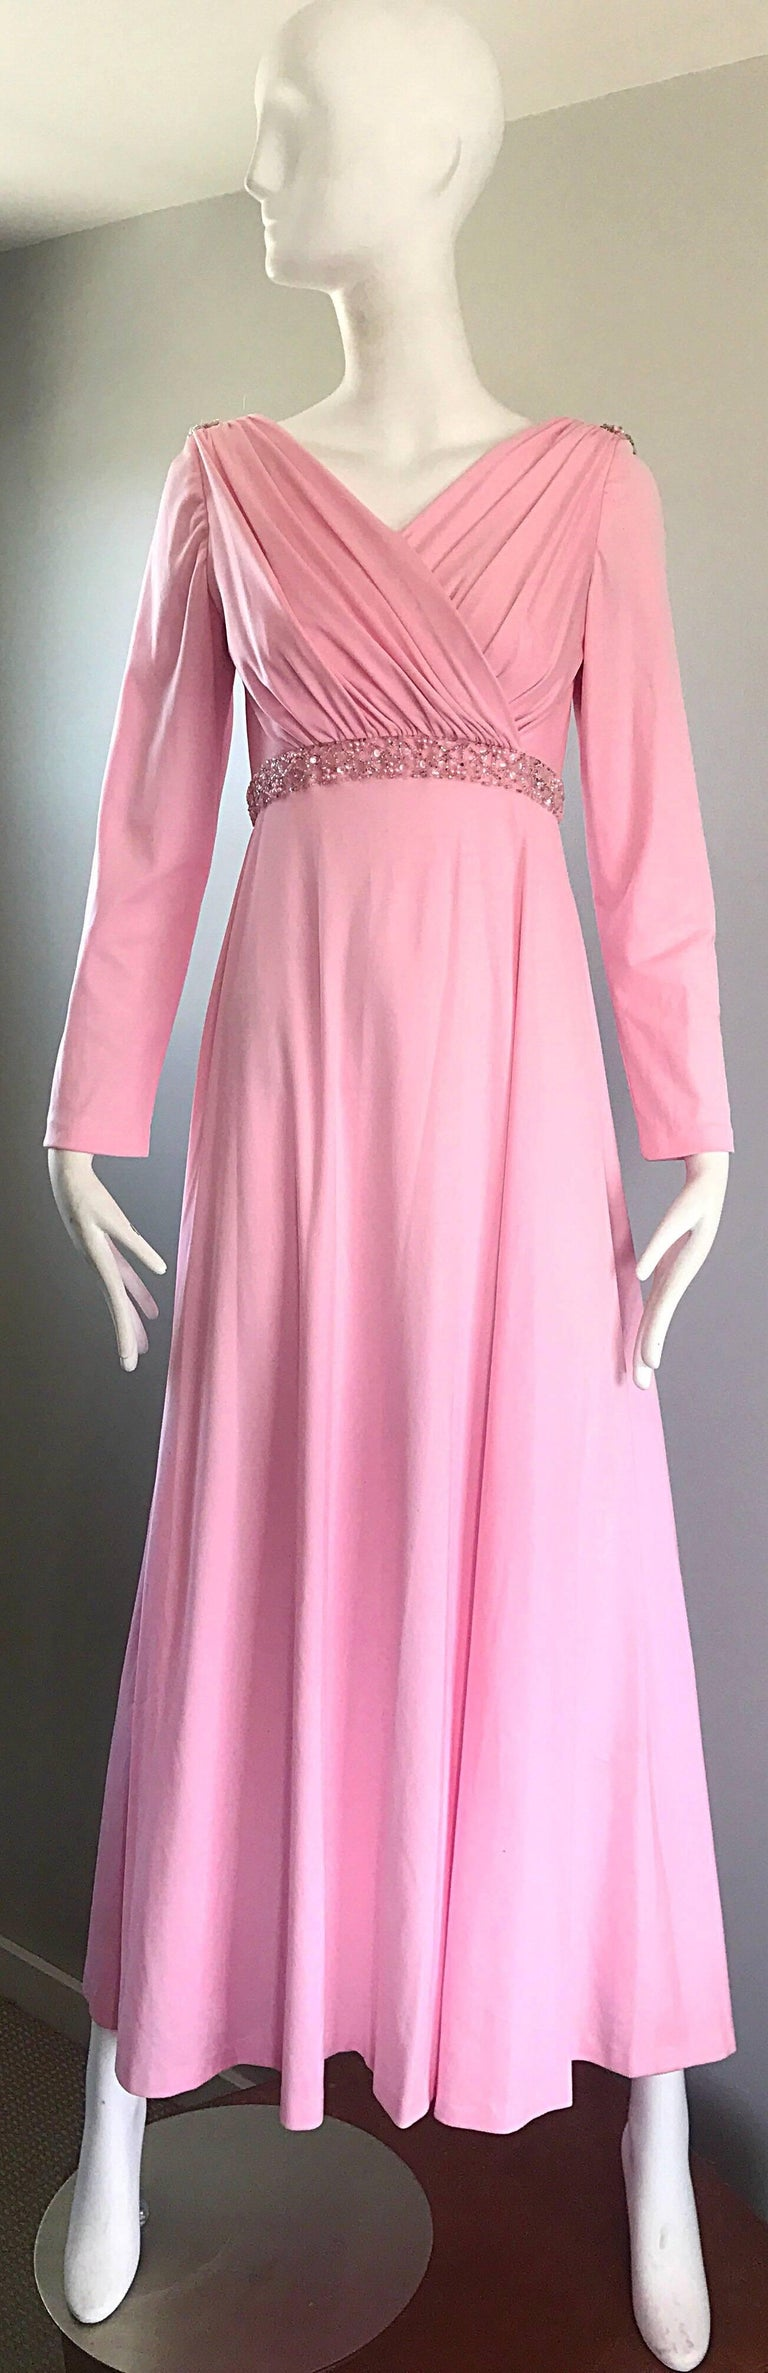 Amazing 1970s Light Pink Grecian Sequined and Beaded Long Sleeve Maxi Dress Gown For Sale 5